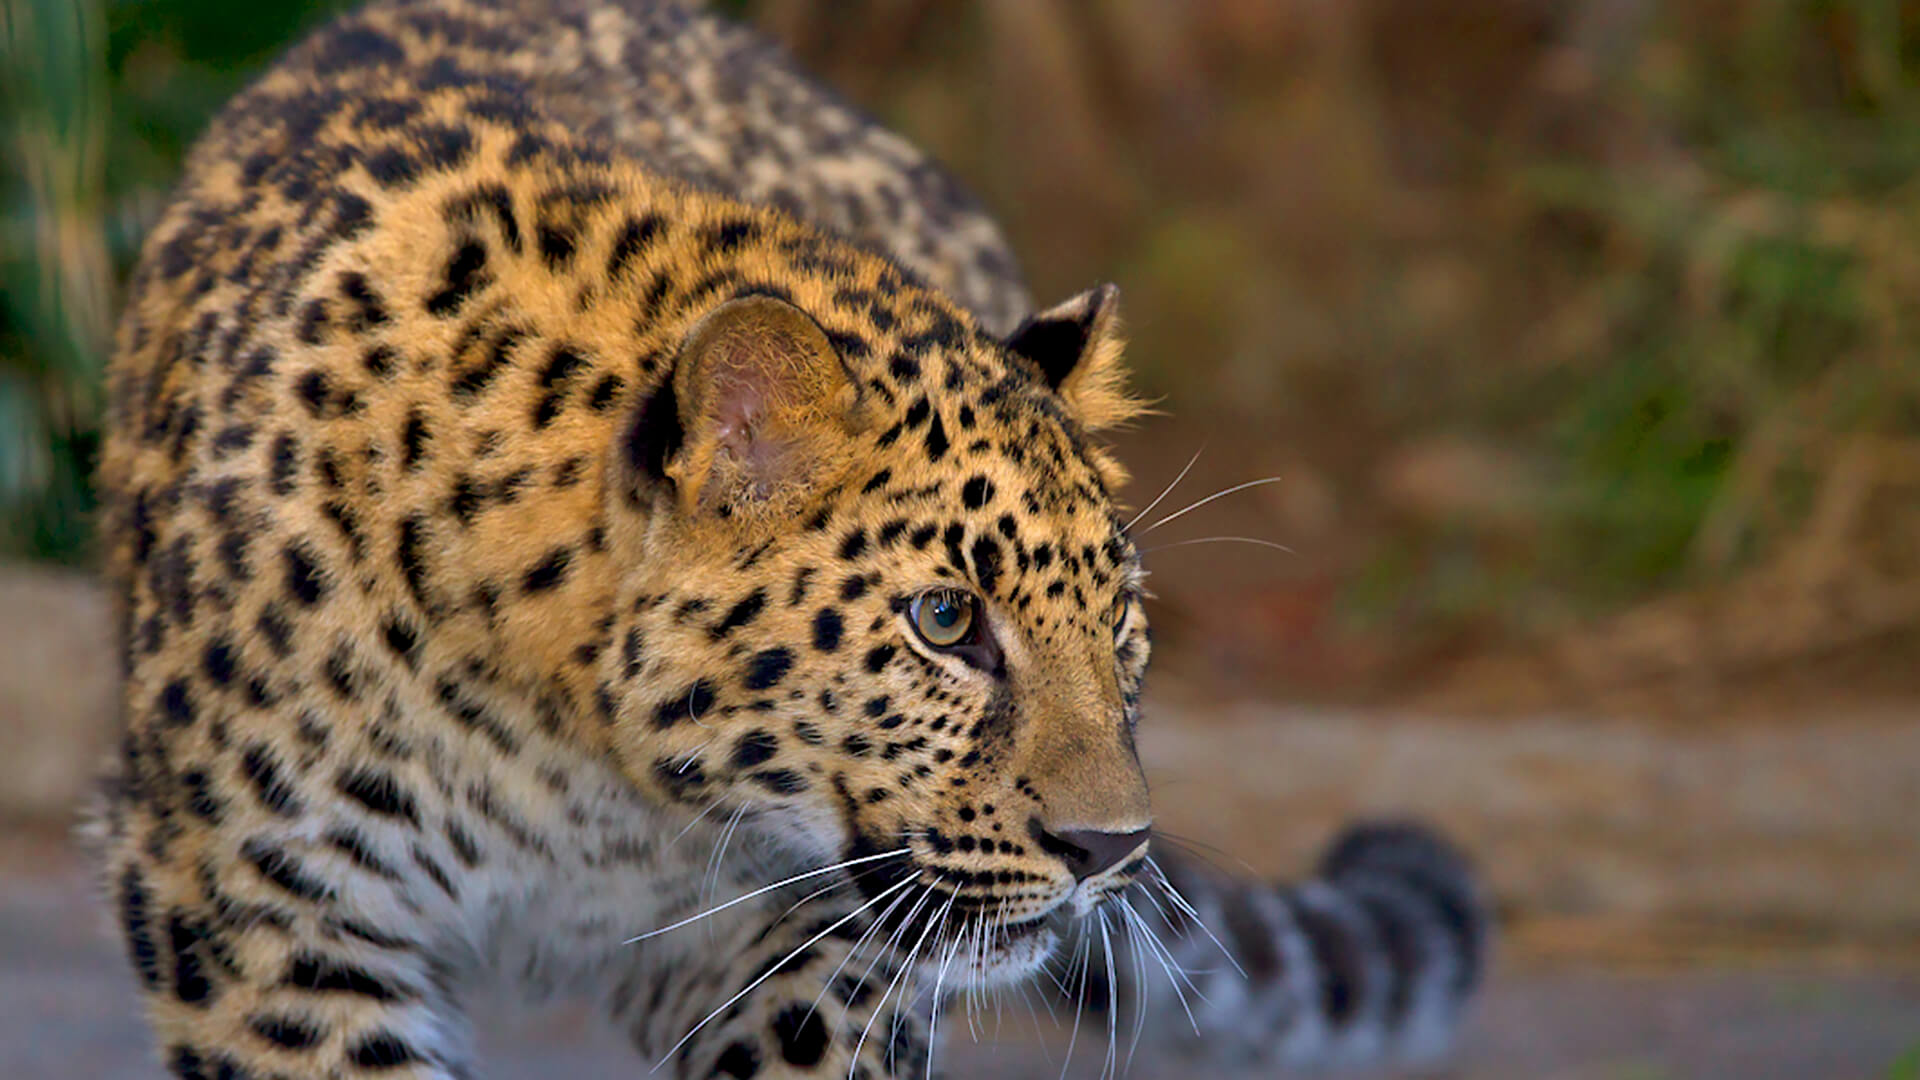 snow leopard anatomy diagram volleyball 6 2 defense san diego zoo animals plants amur looking to the right with blurred jungle background